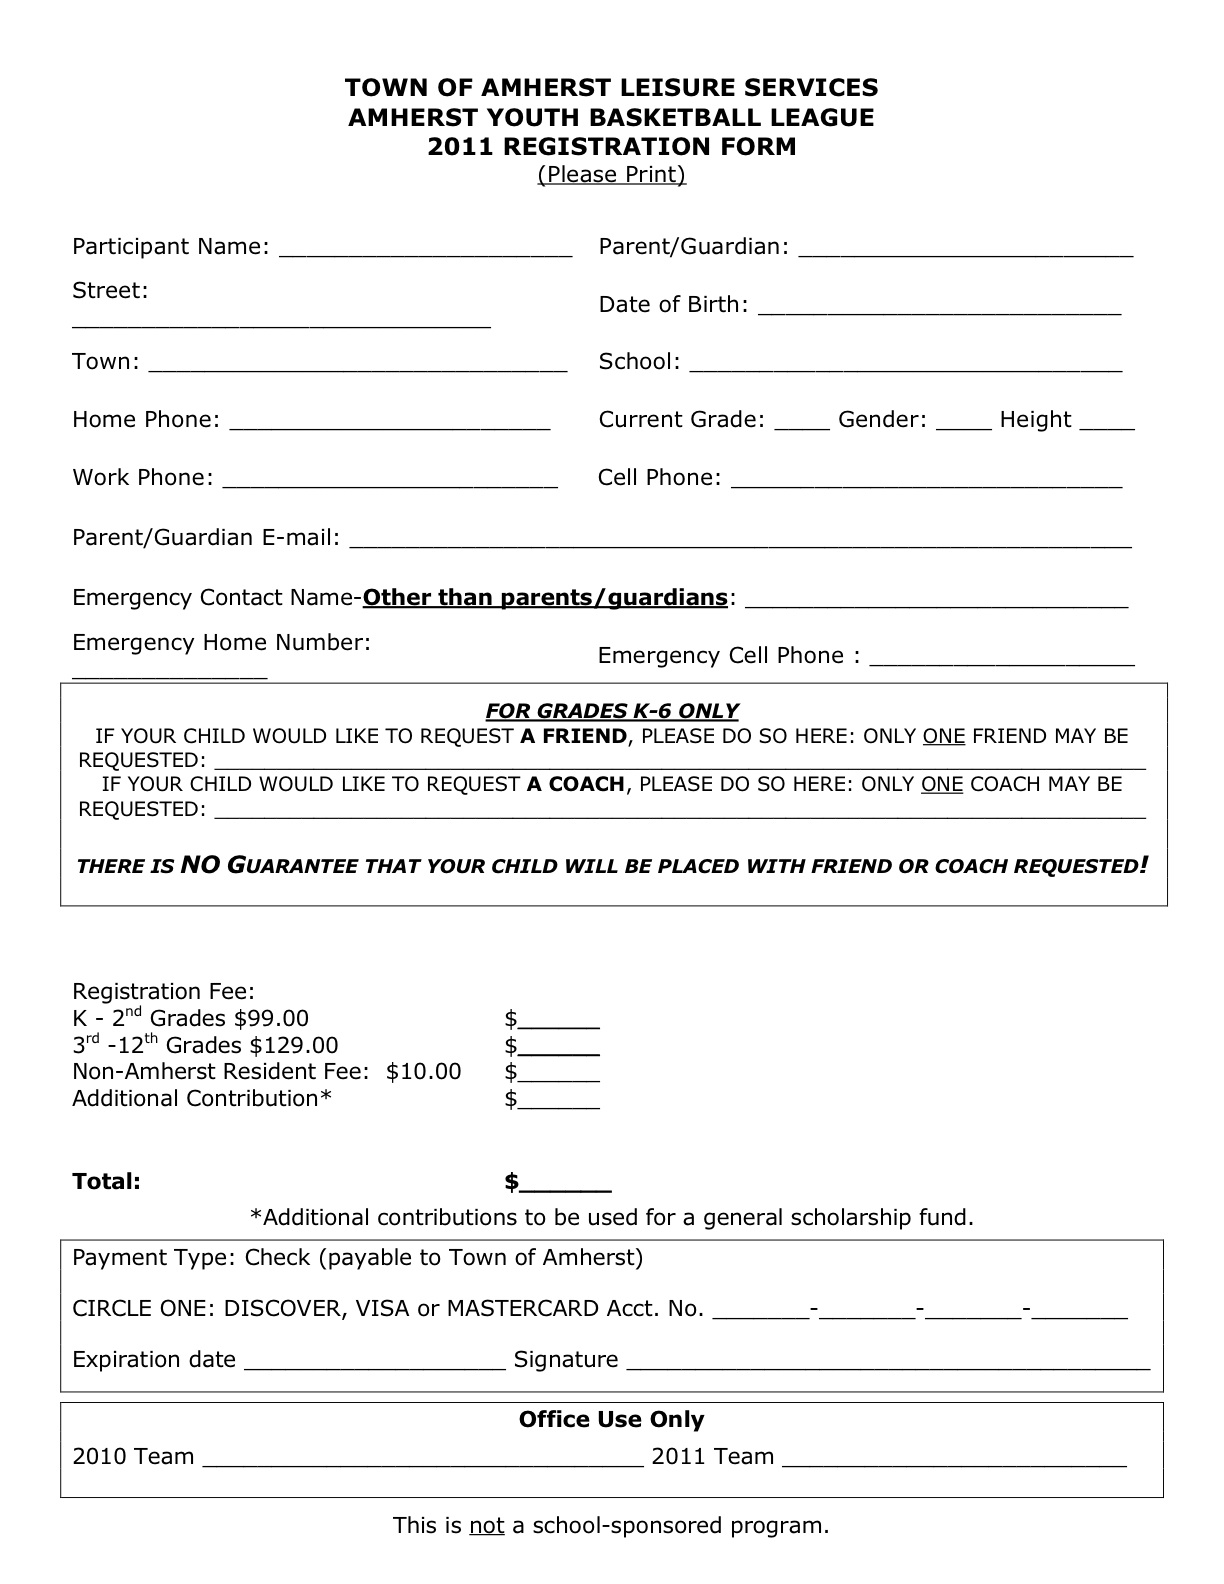 Youthbasketballregform2011updateddec1g basketball registration form template word online registration form template pronofoot35fo Image collections